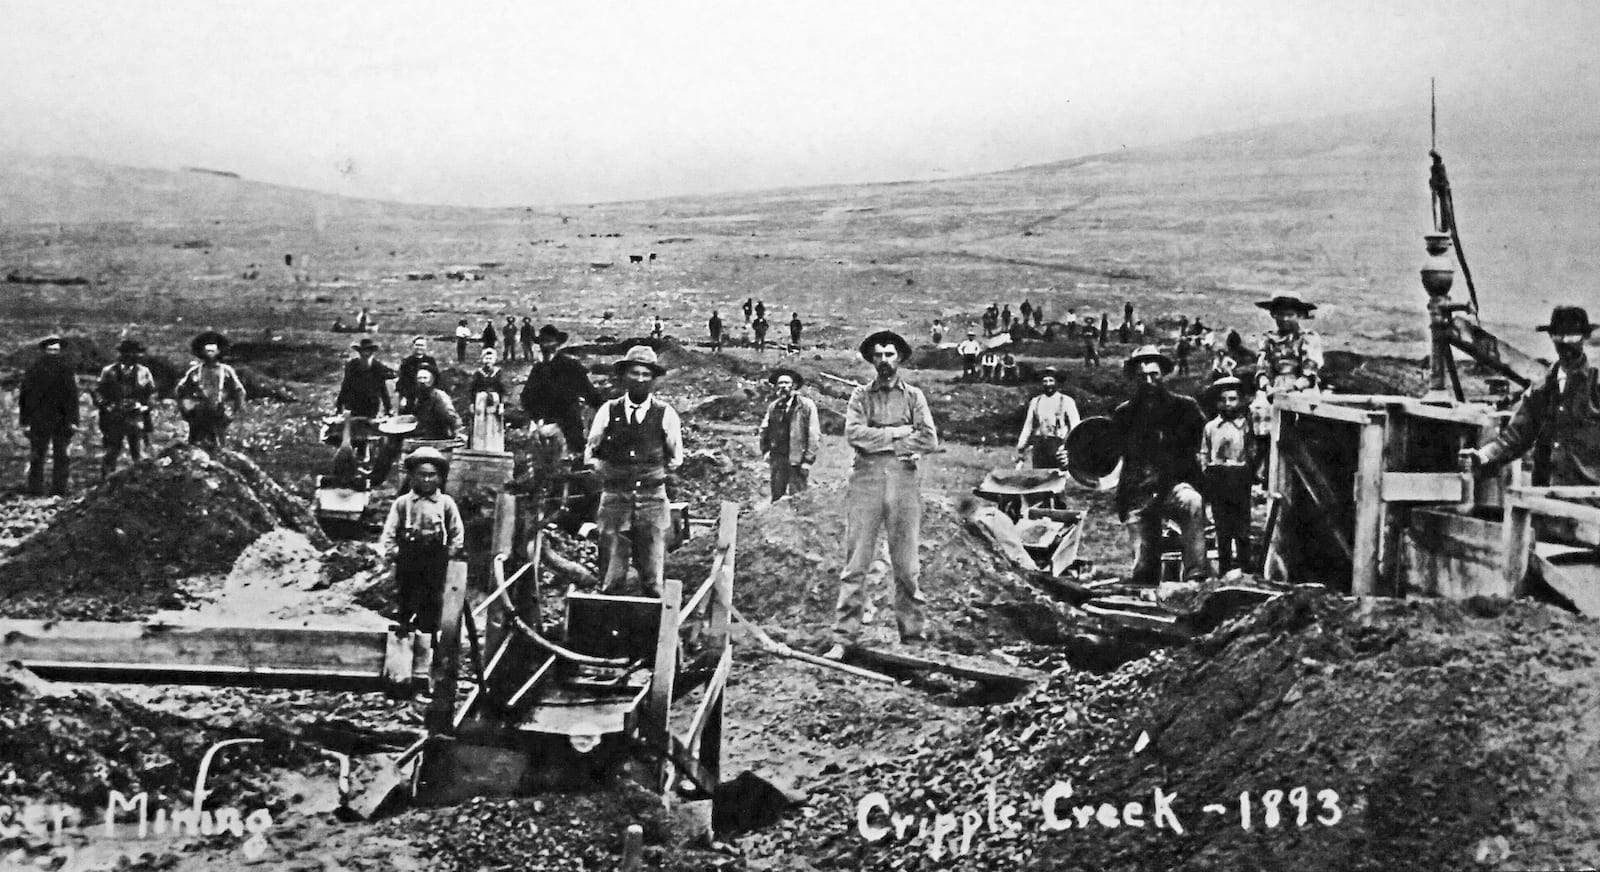 Cripple Creek CO 1893 Rush Gold Placer Mining